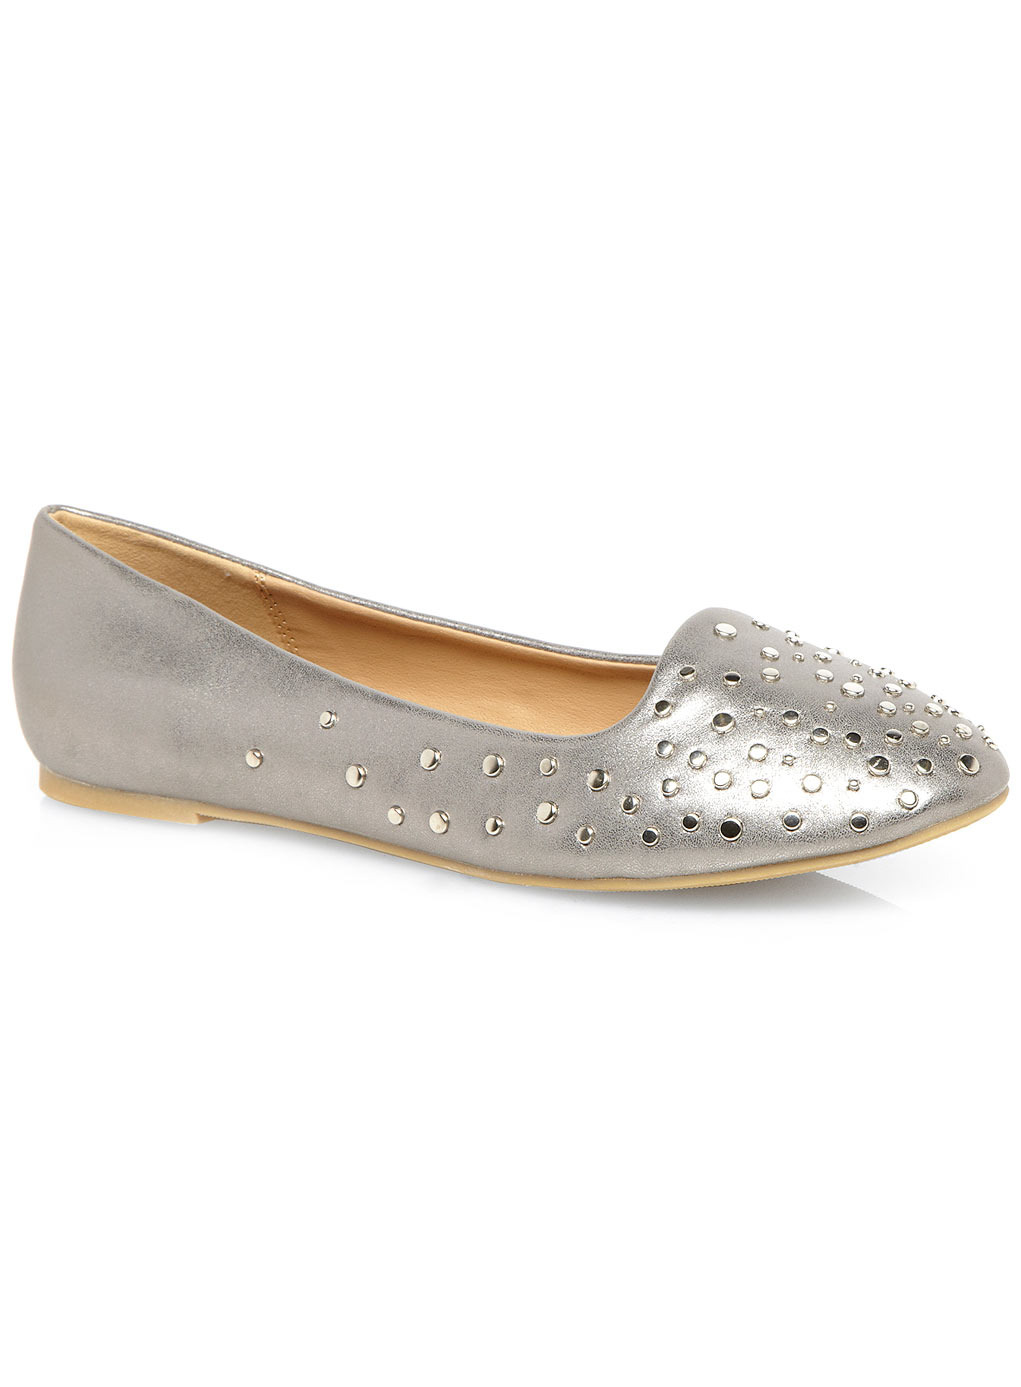 Pewter Metallic Studded Slipper Shoes - predominant colour: silver; occasions: casual, evening, creative work; material: faux leather; heel height: flat; embellishment: studs; toe: round toe; style: ballerinas / pumps; finish: metallic; pattern: plain; trends: shimmery metallics; season: s/s 2014